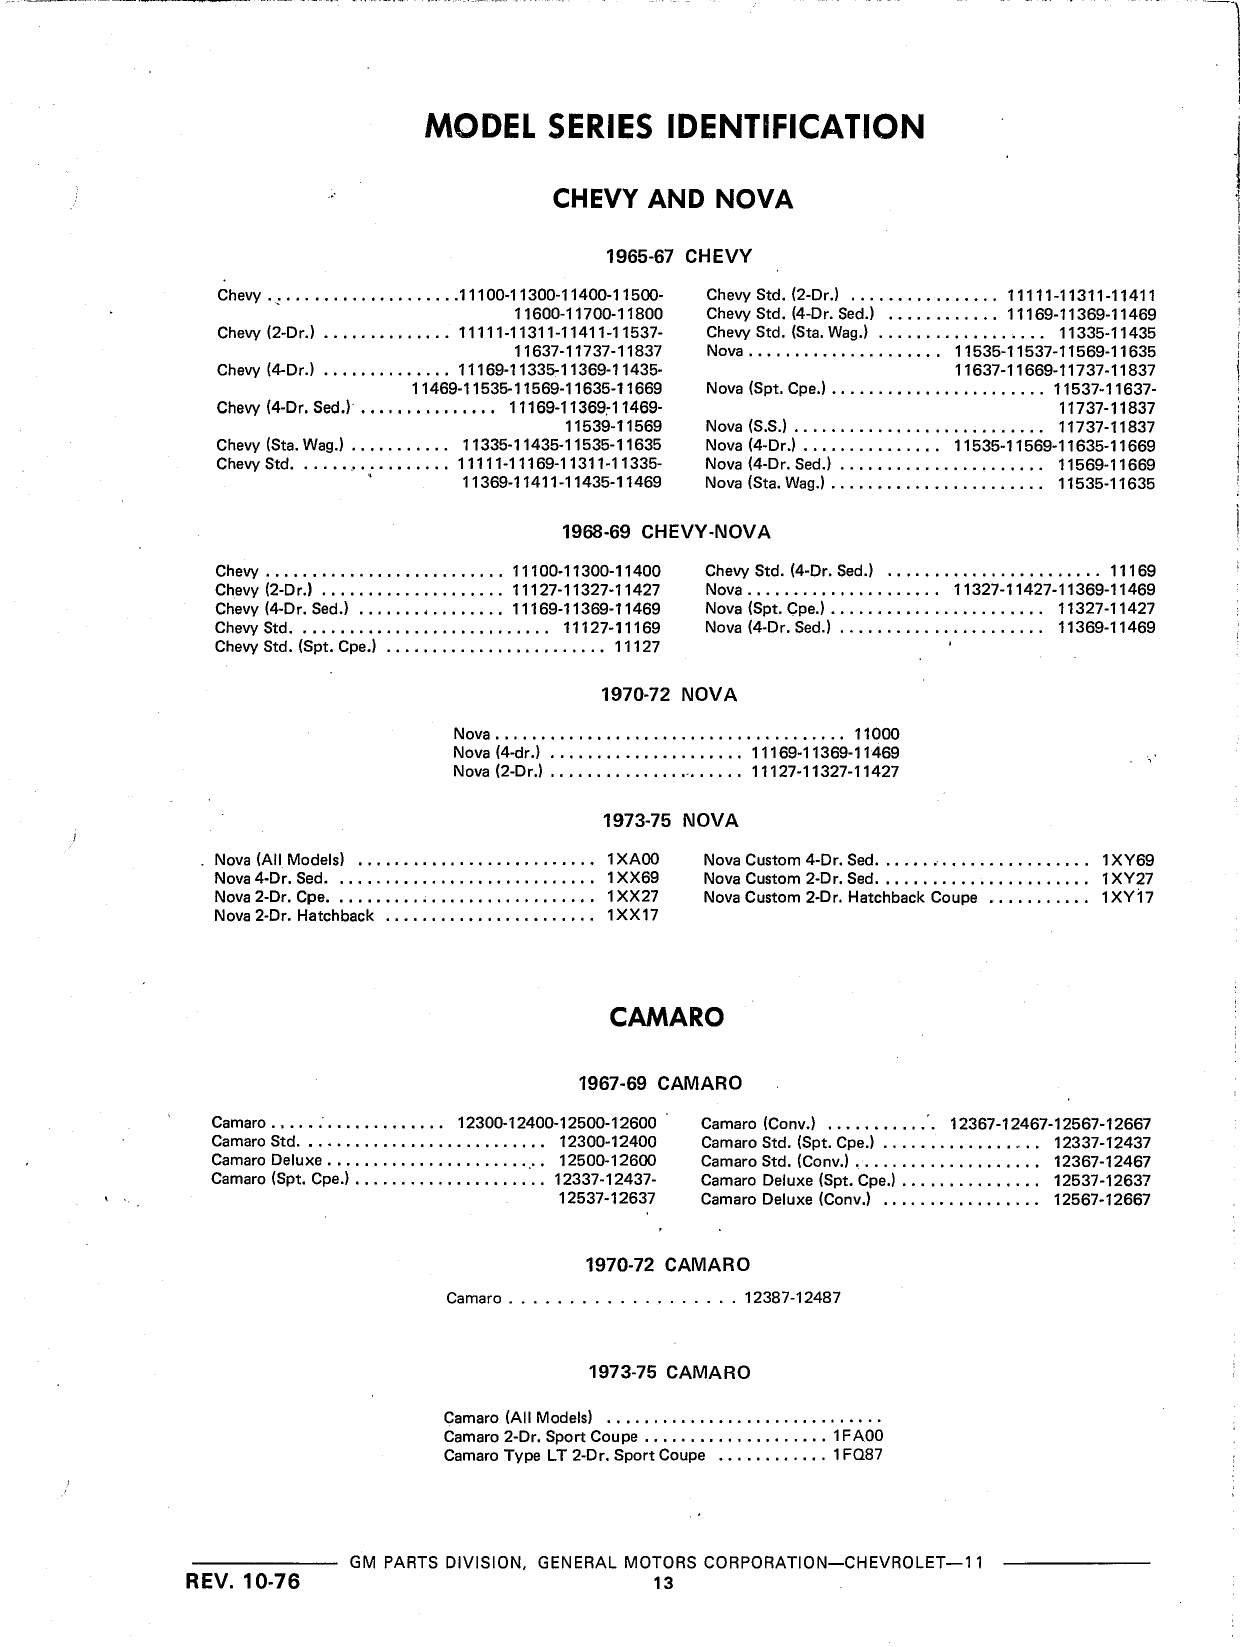 GMPartsWiki - Chassis and Body Parts Catalog P&A 11 April 1977